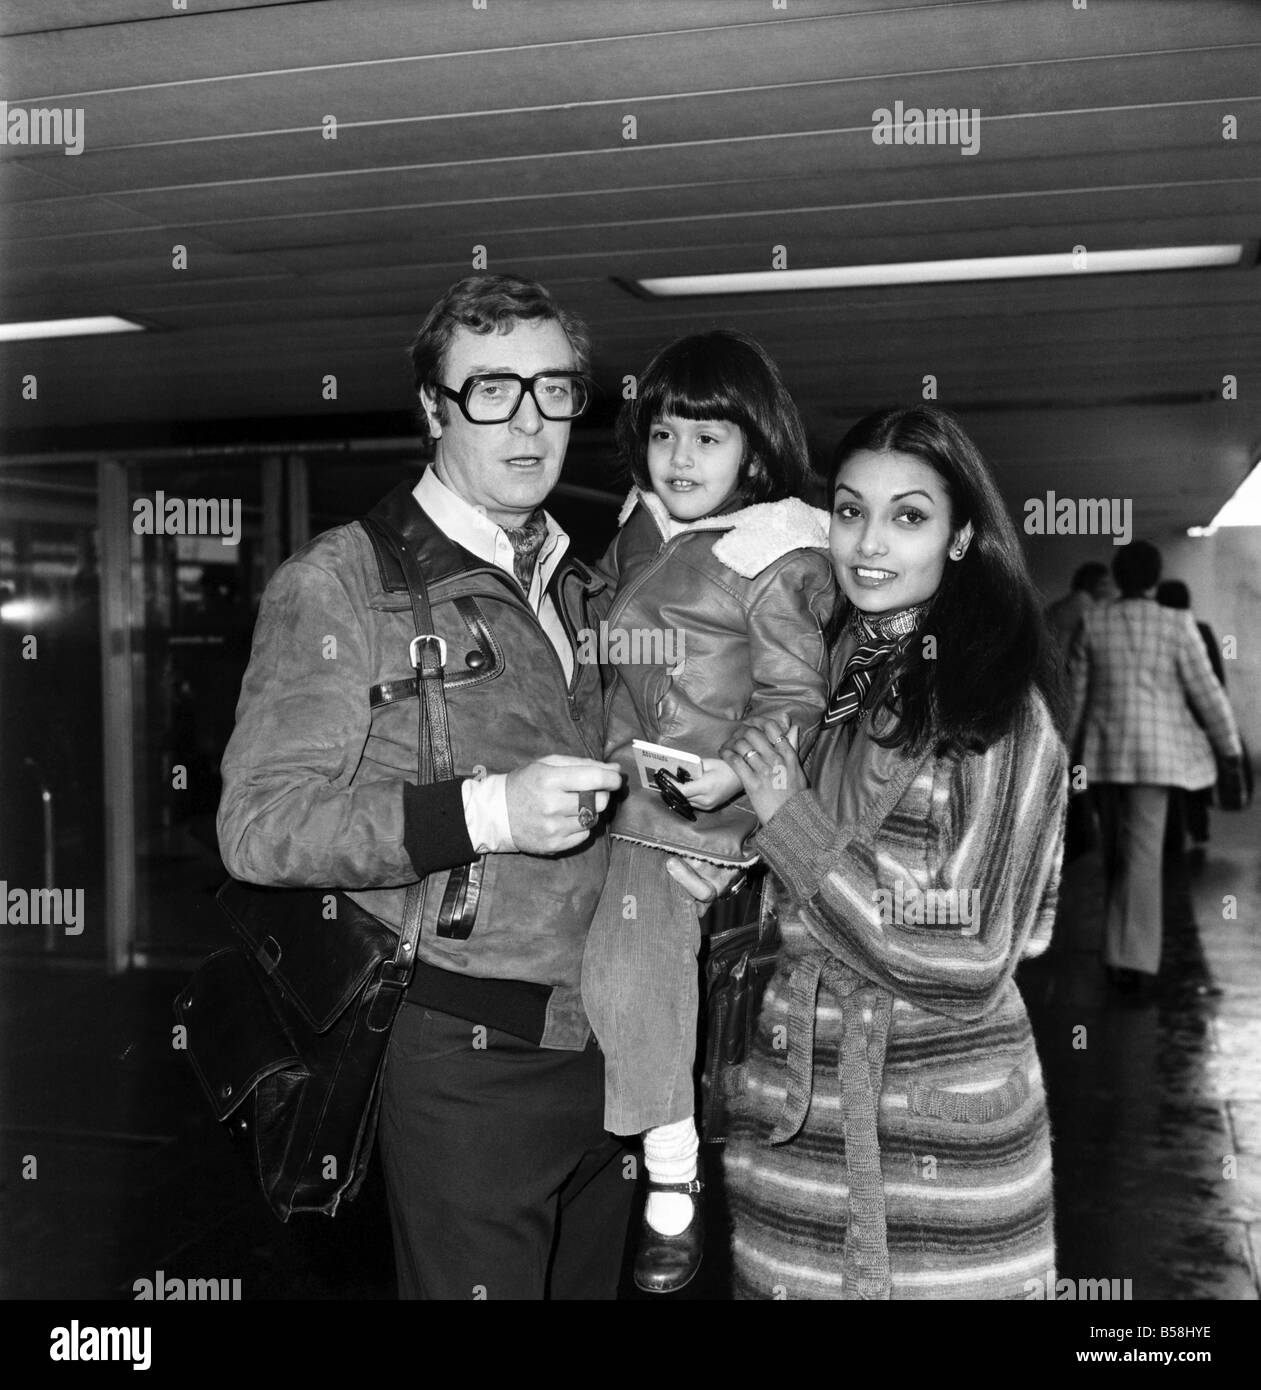 1000+ Images About All About,Michael Caine And Wife